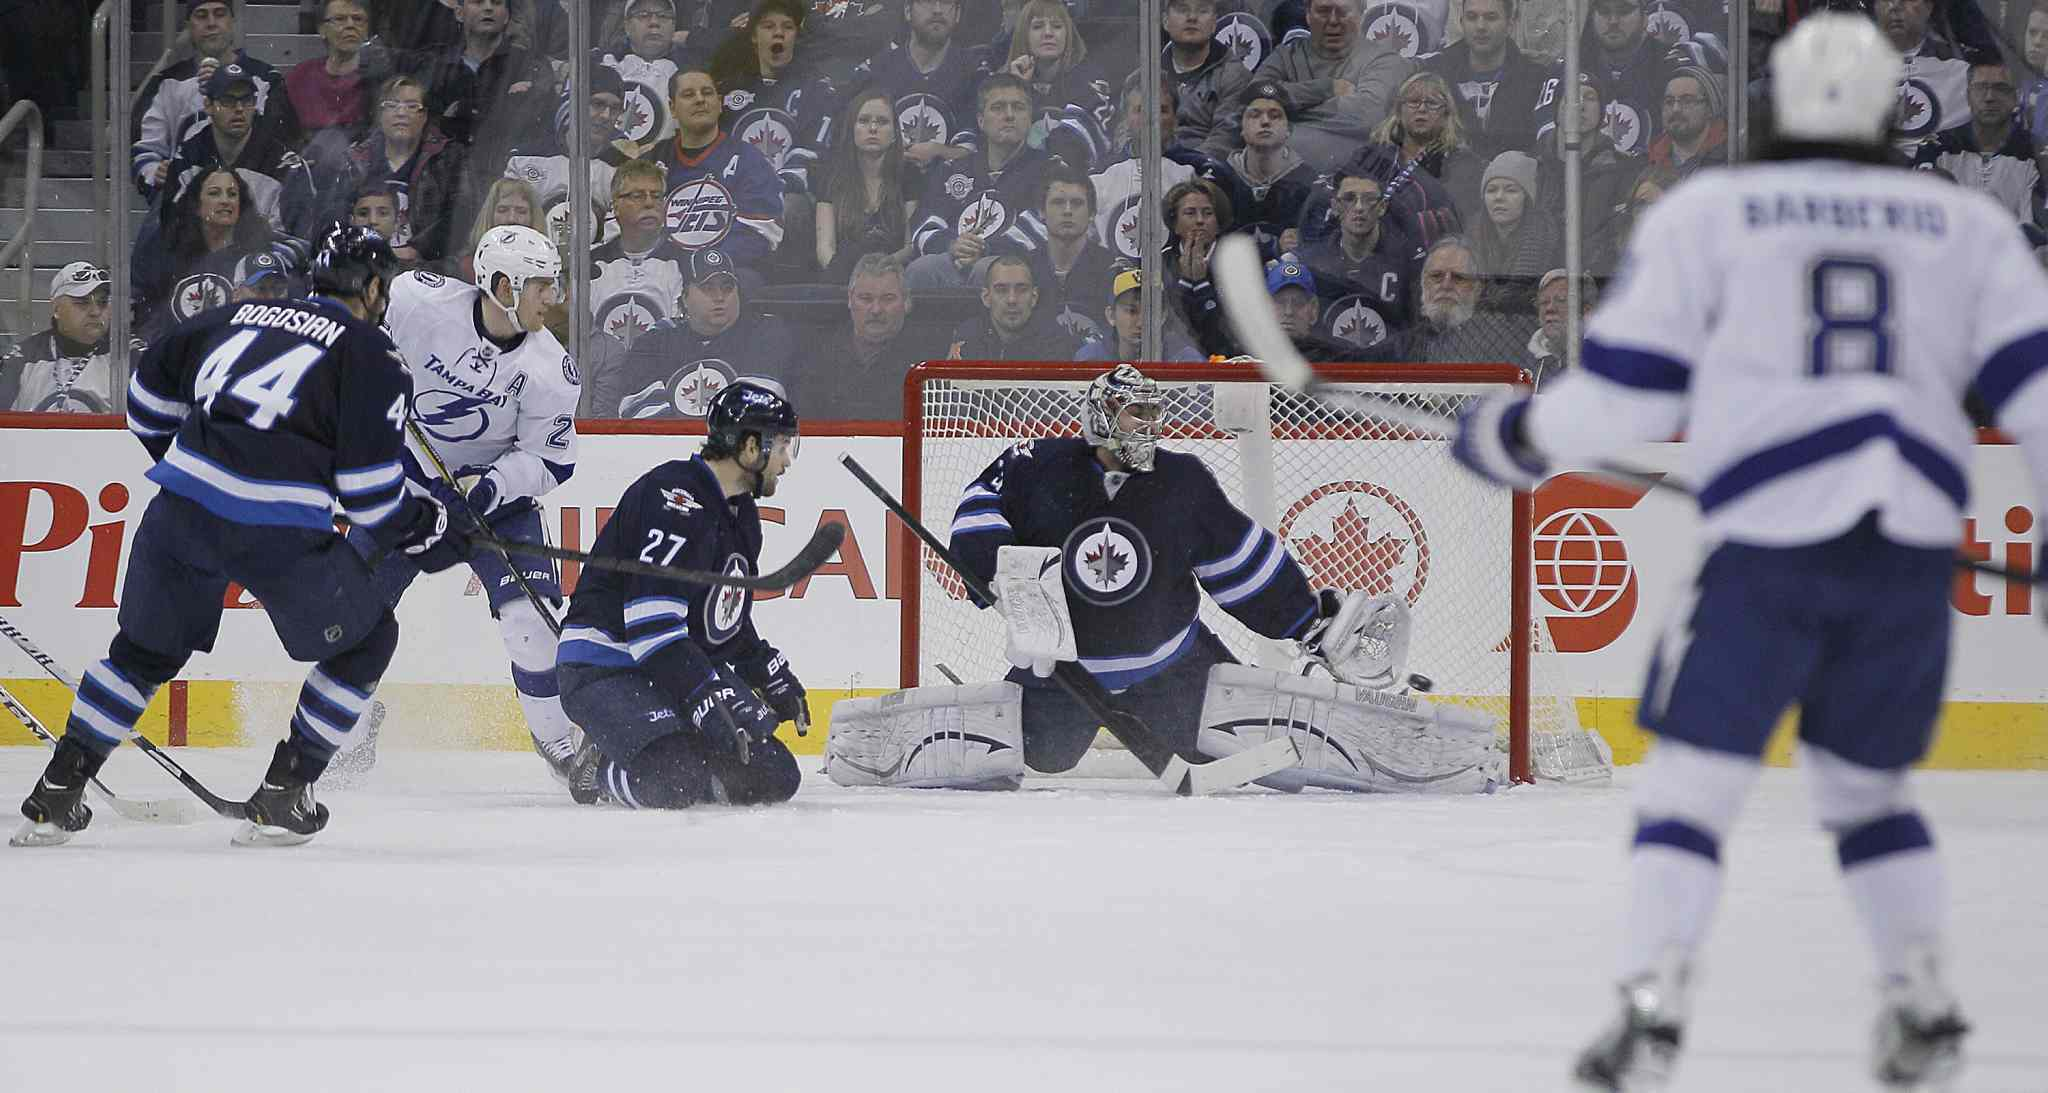 Winnipeg Jets' goaltender Ondrej Pavelec (31) can't stop the shot from Tampa Bay Lightning's Ondrej Palat (18) during second period.